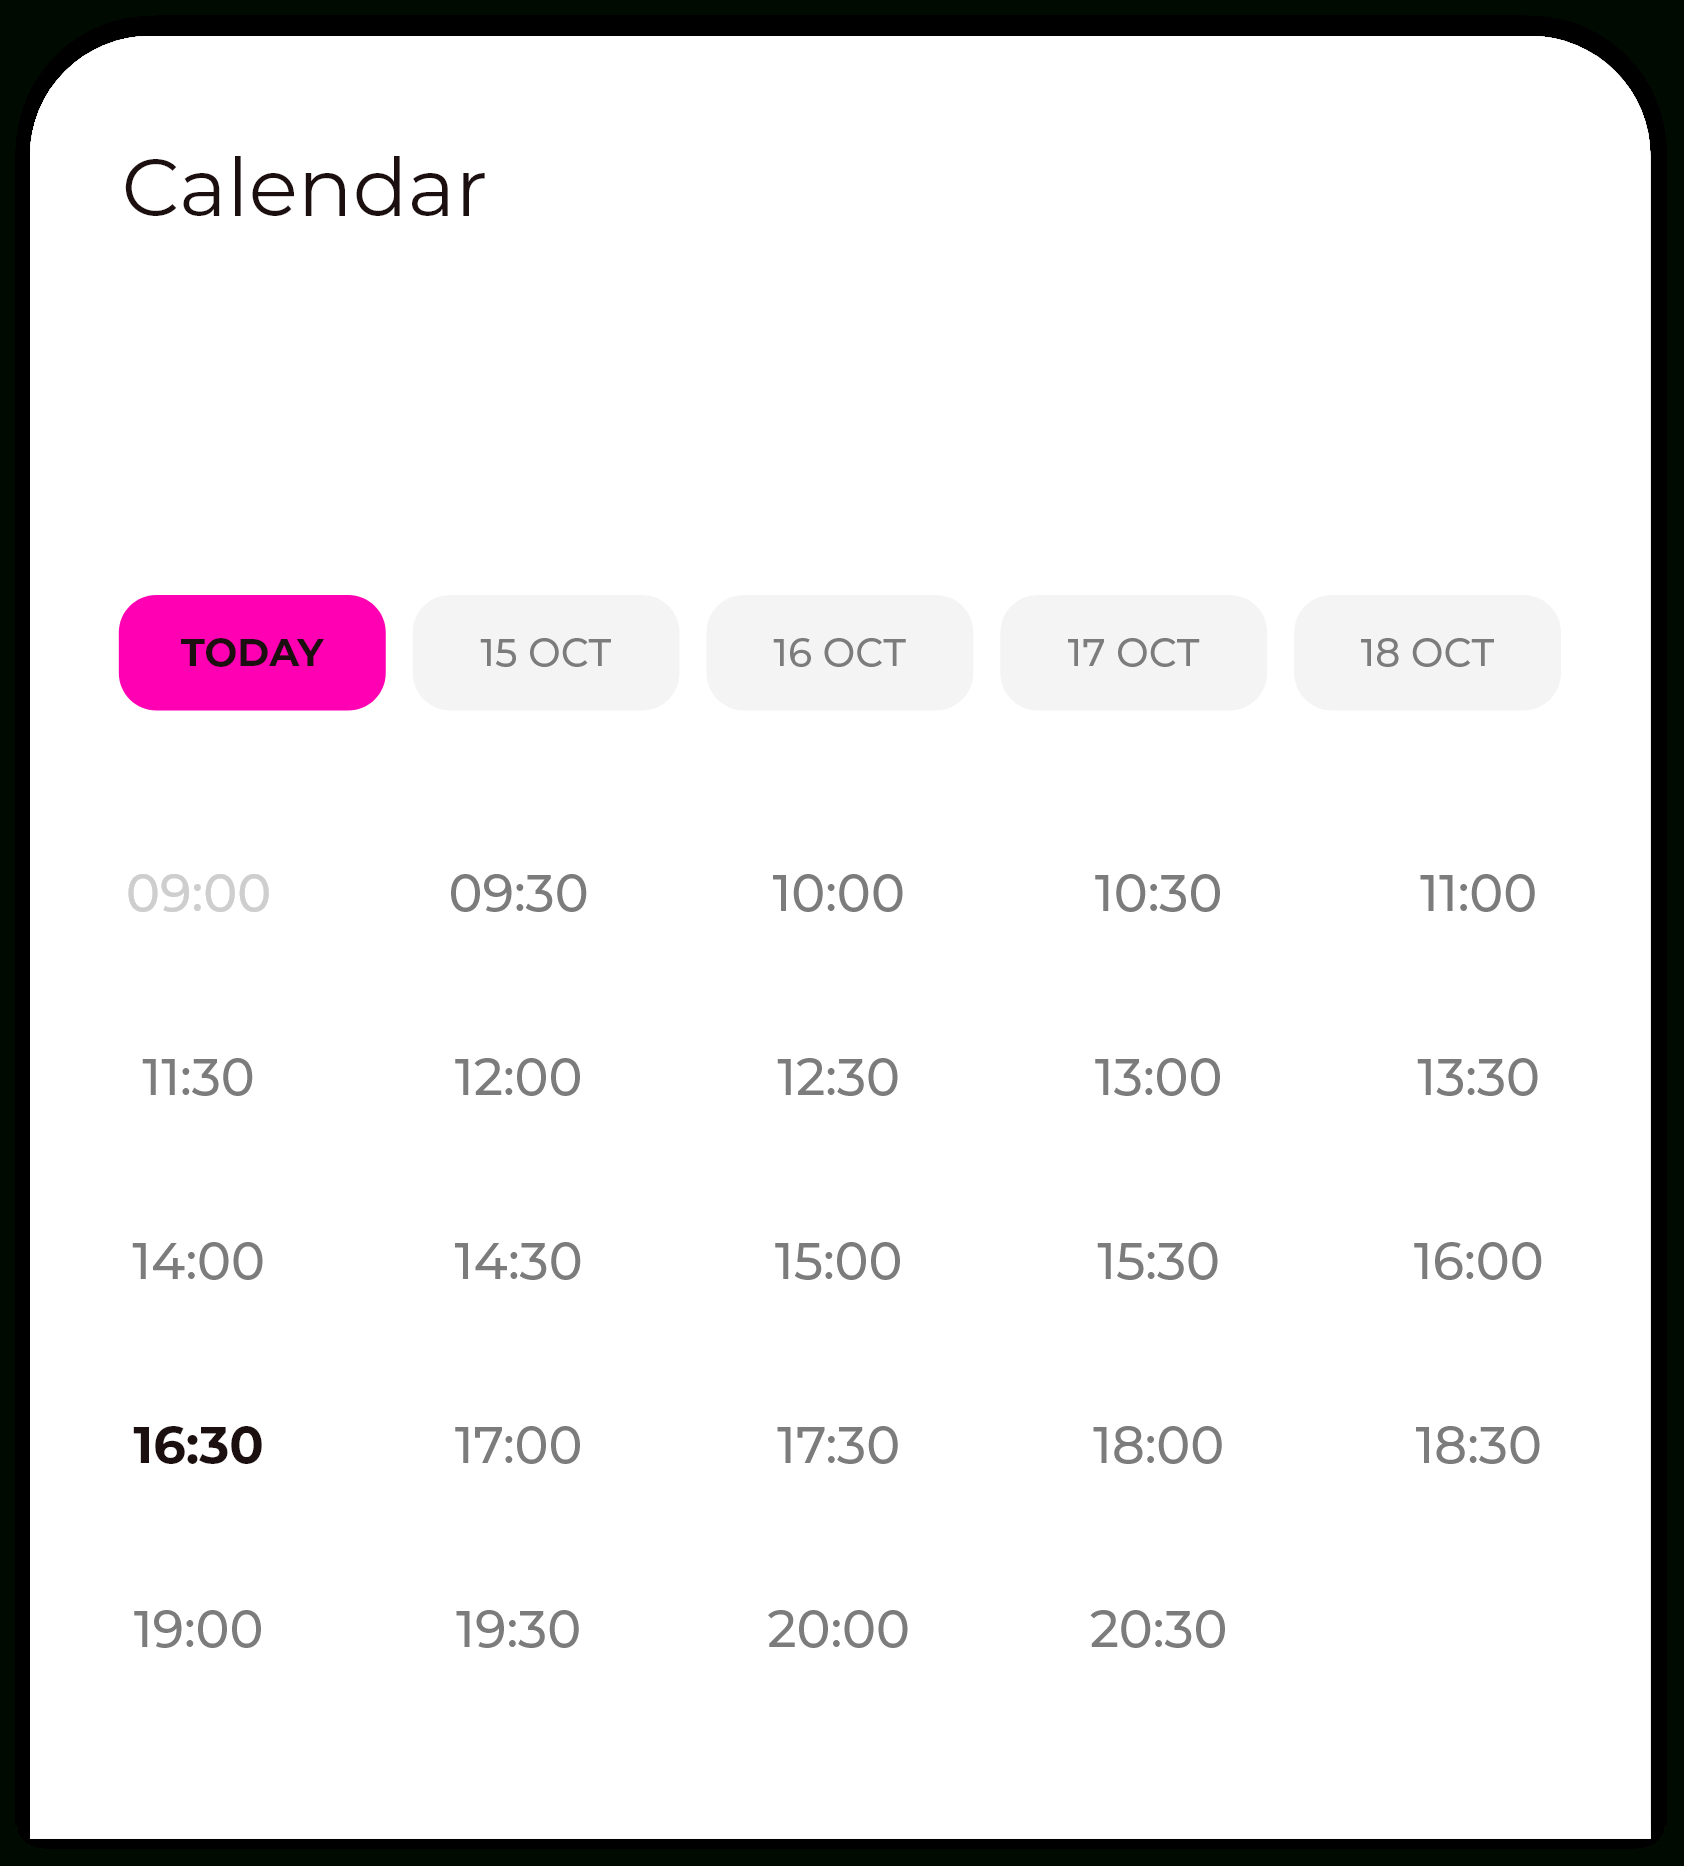 How Can I Have A Calendar With Date As Horizontal Rows And pertaining to Android Arsenal Calendar